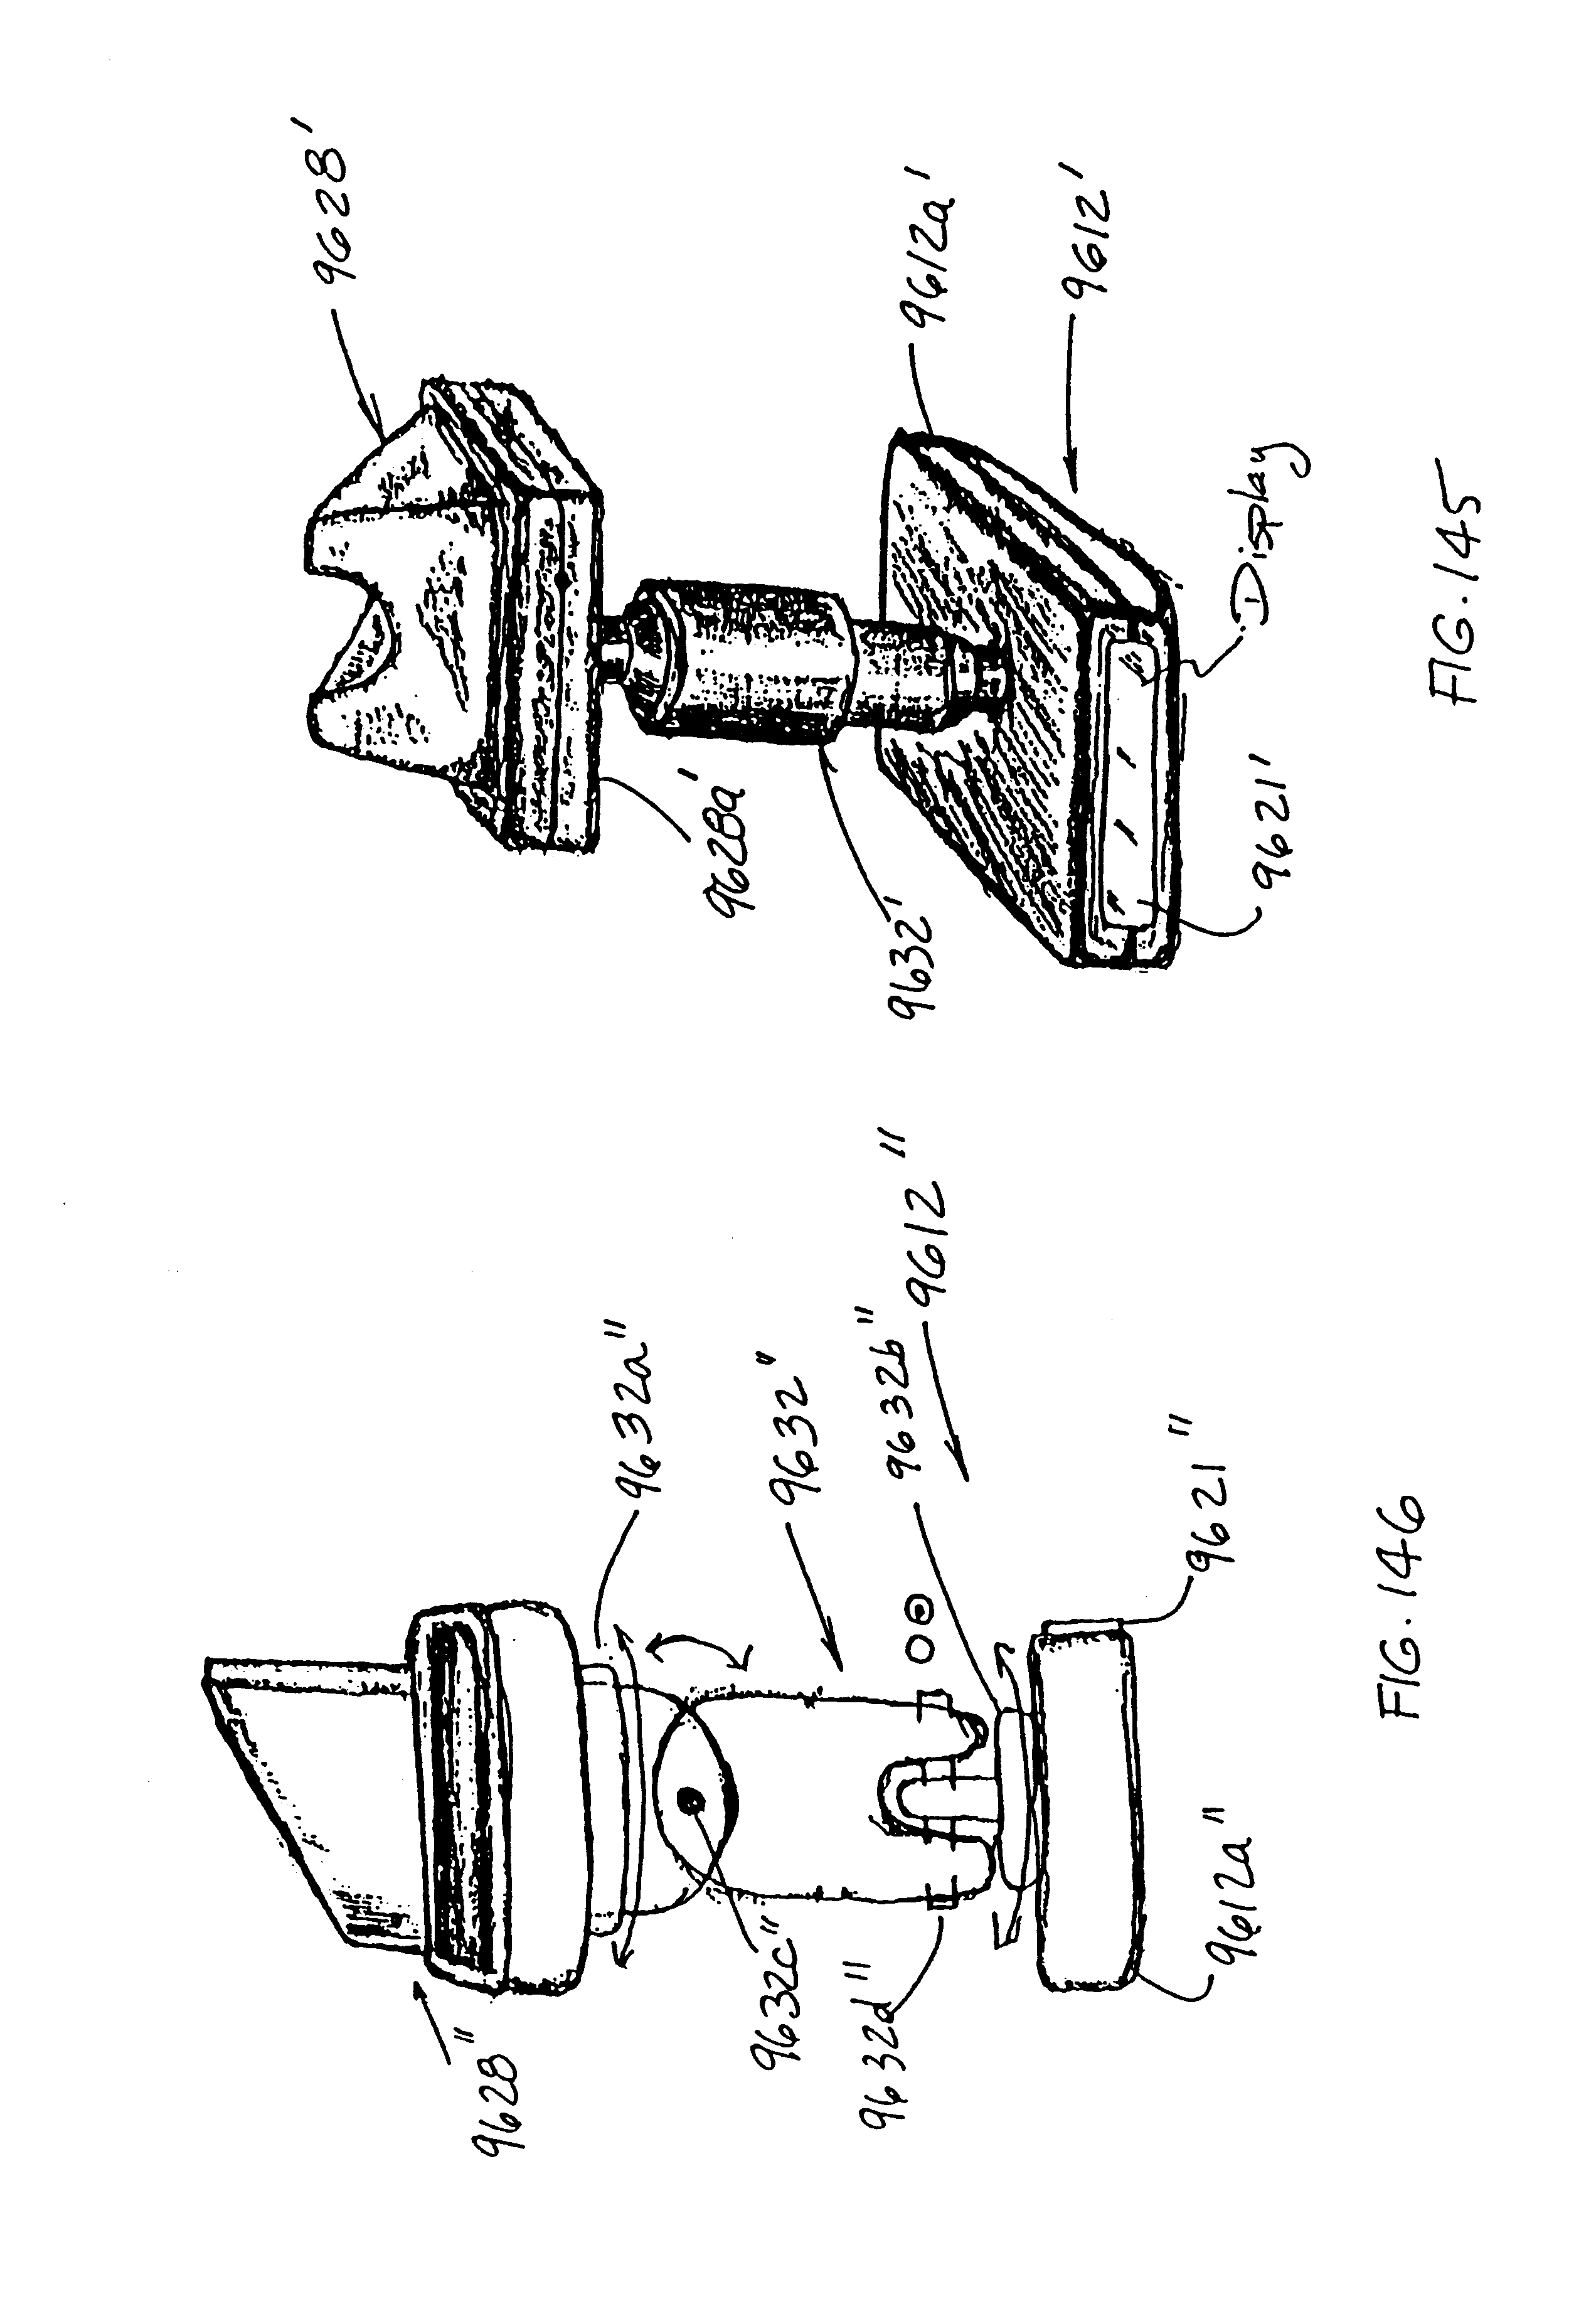 Patent Us 6690268 B2 Fig 4 Rear Terminals Of A Midrange Controller Images